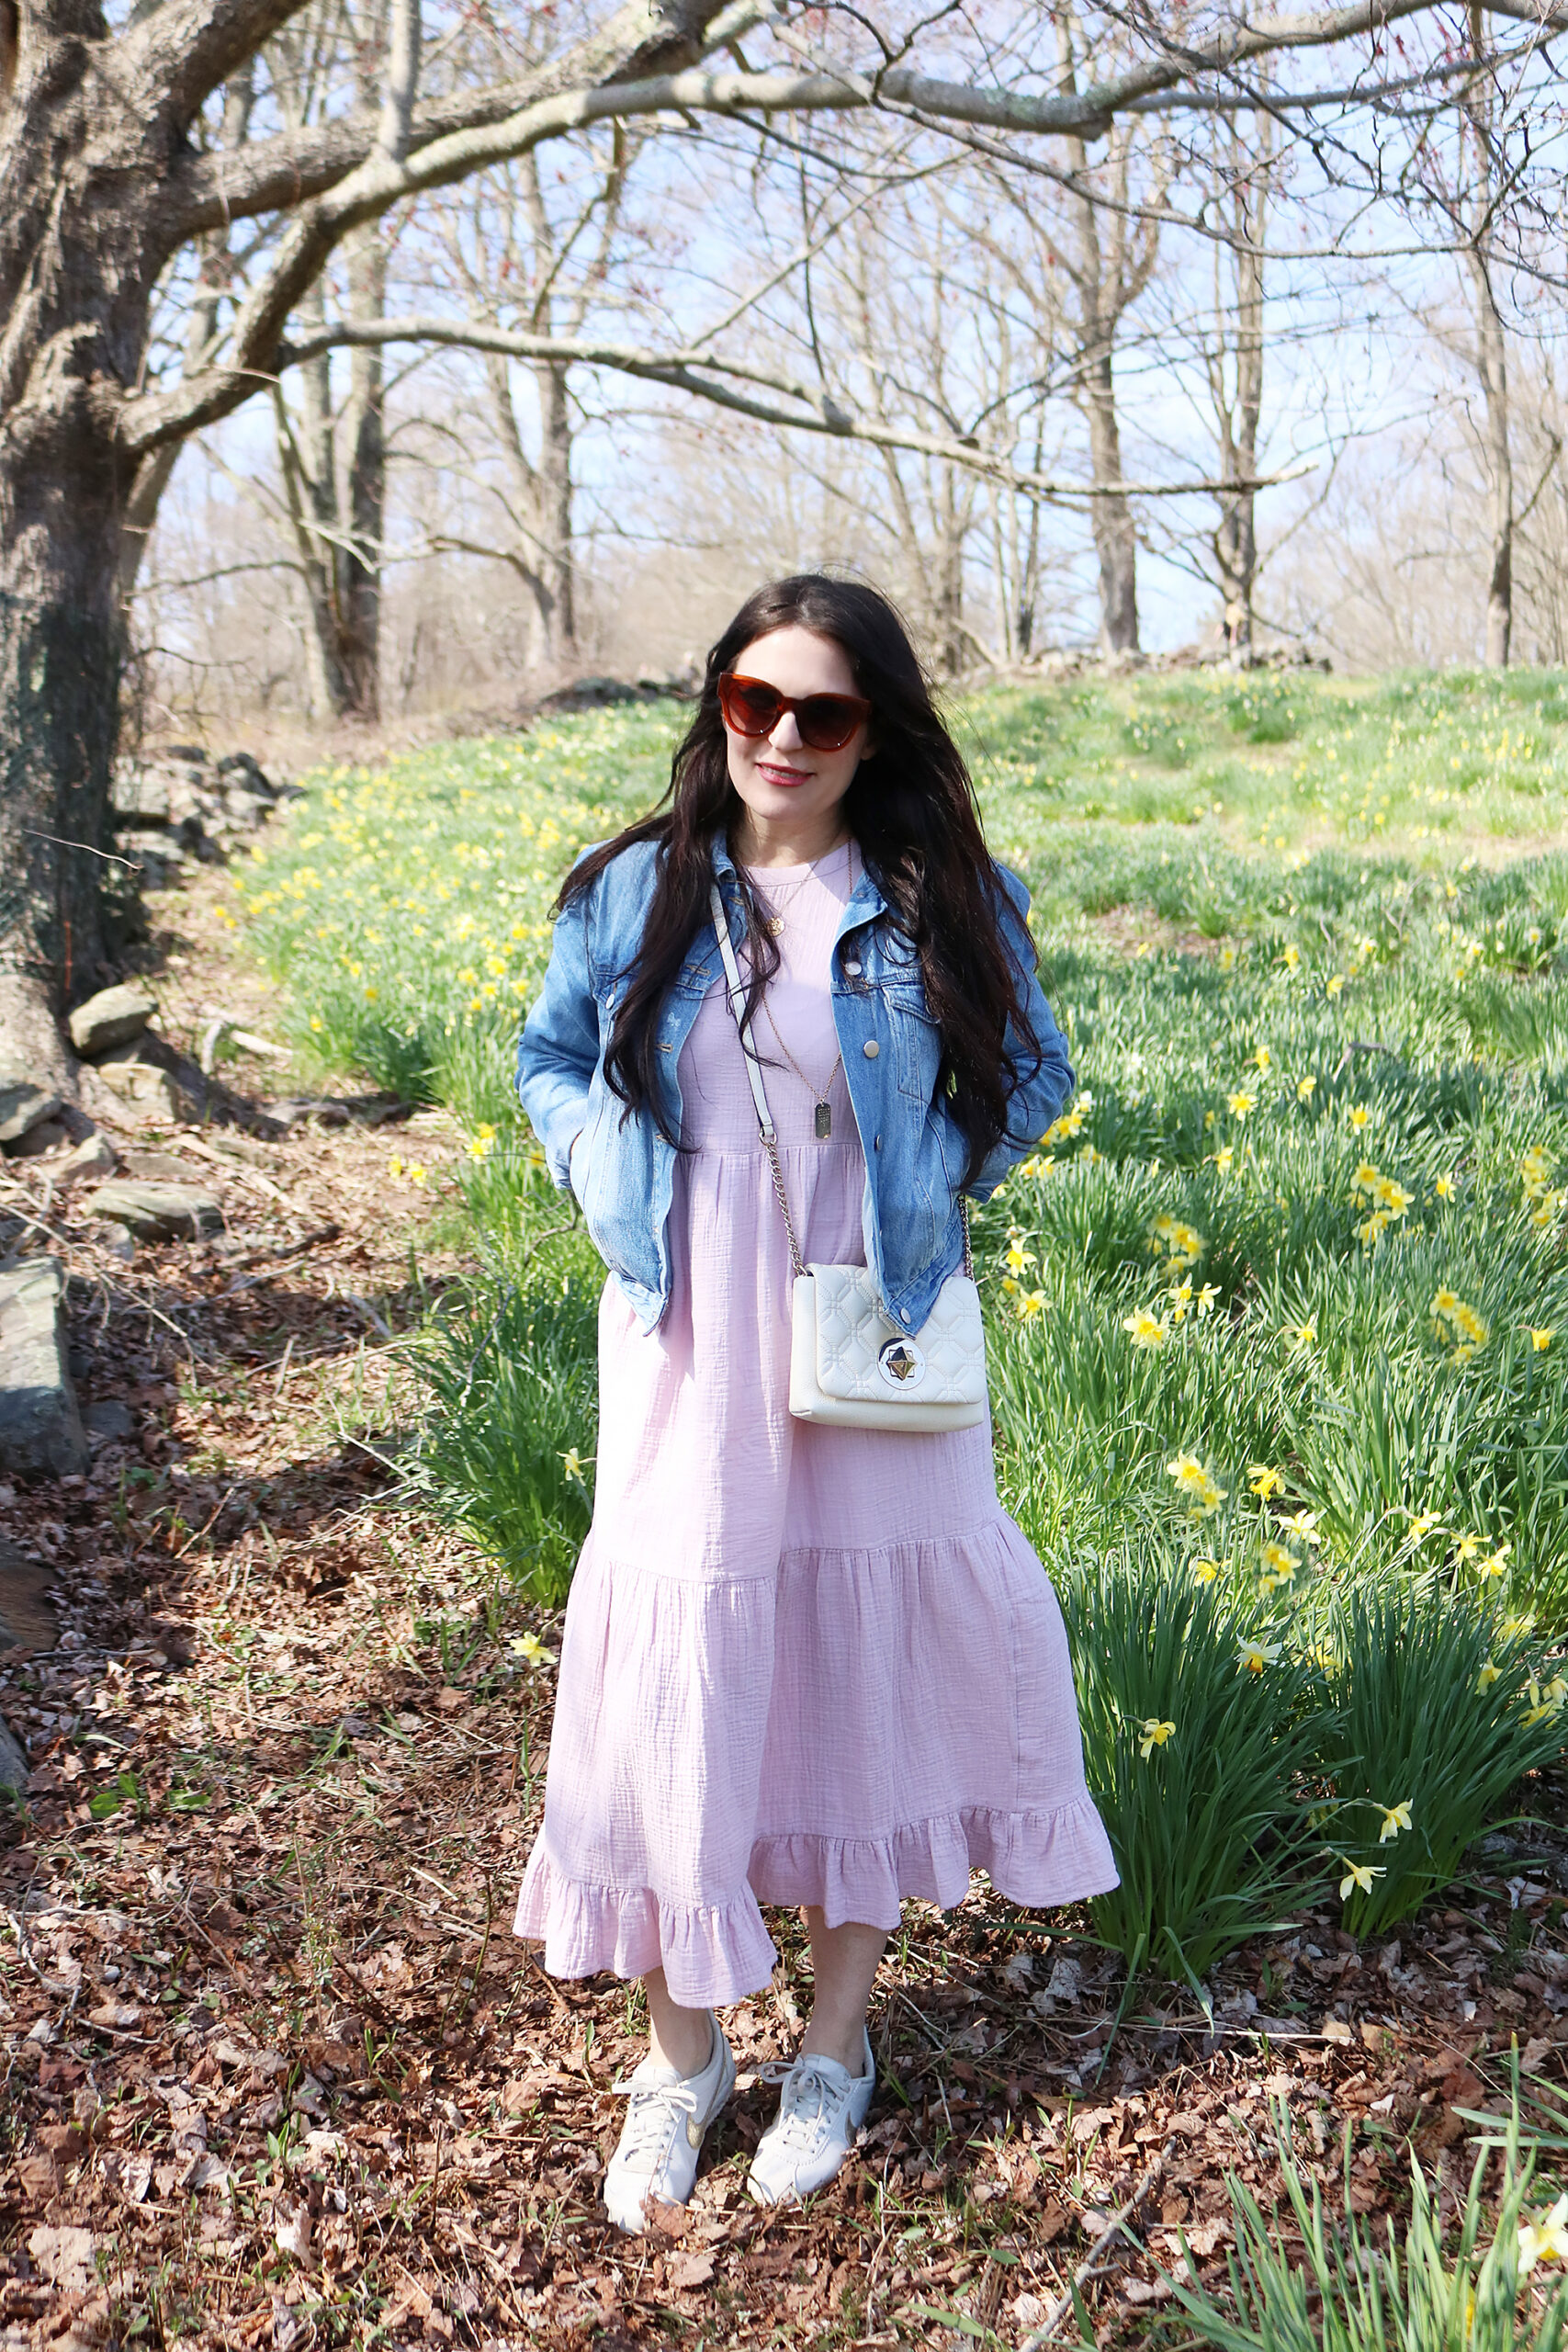 Long maxi dress with jean jacker and white sneaker outfits. The best sneaker pairs from splurge to save || Darling Darleen Top Connecticut Lifestyle Blogger #whitesneaker